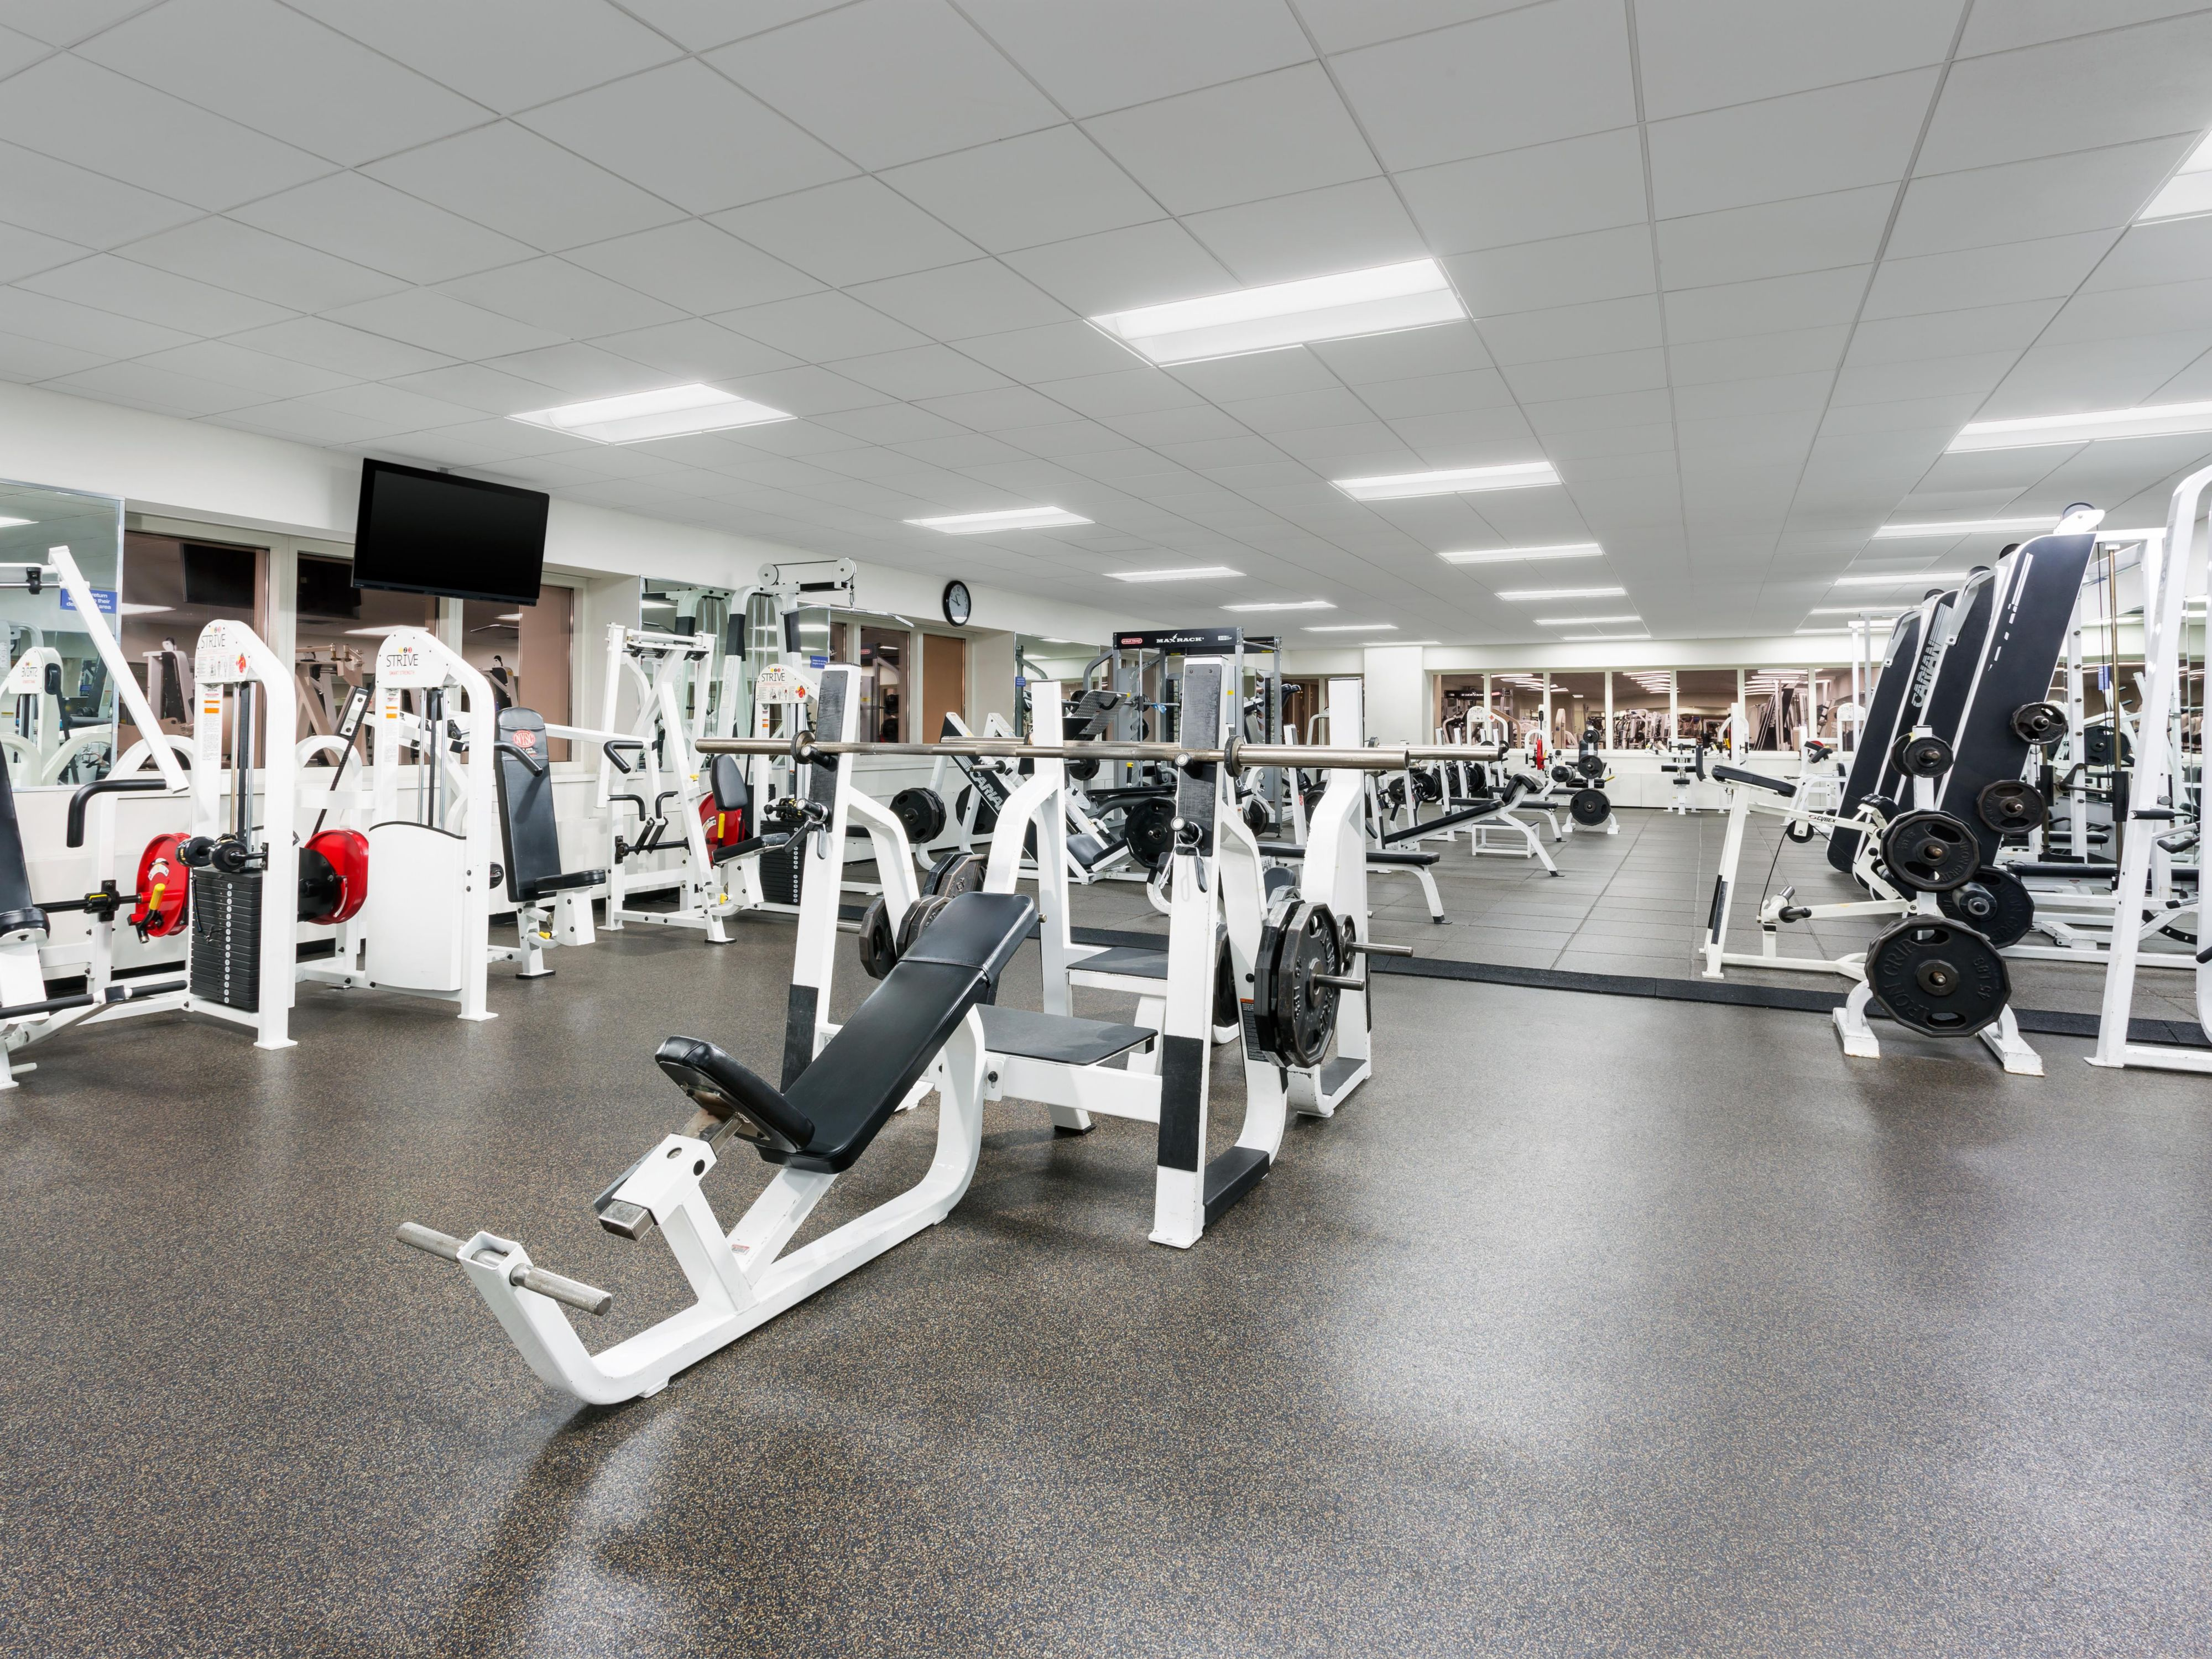 New York Sports Club State Of The Art Fitness Center.